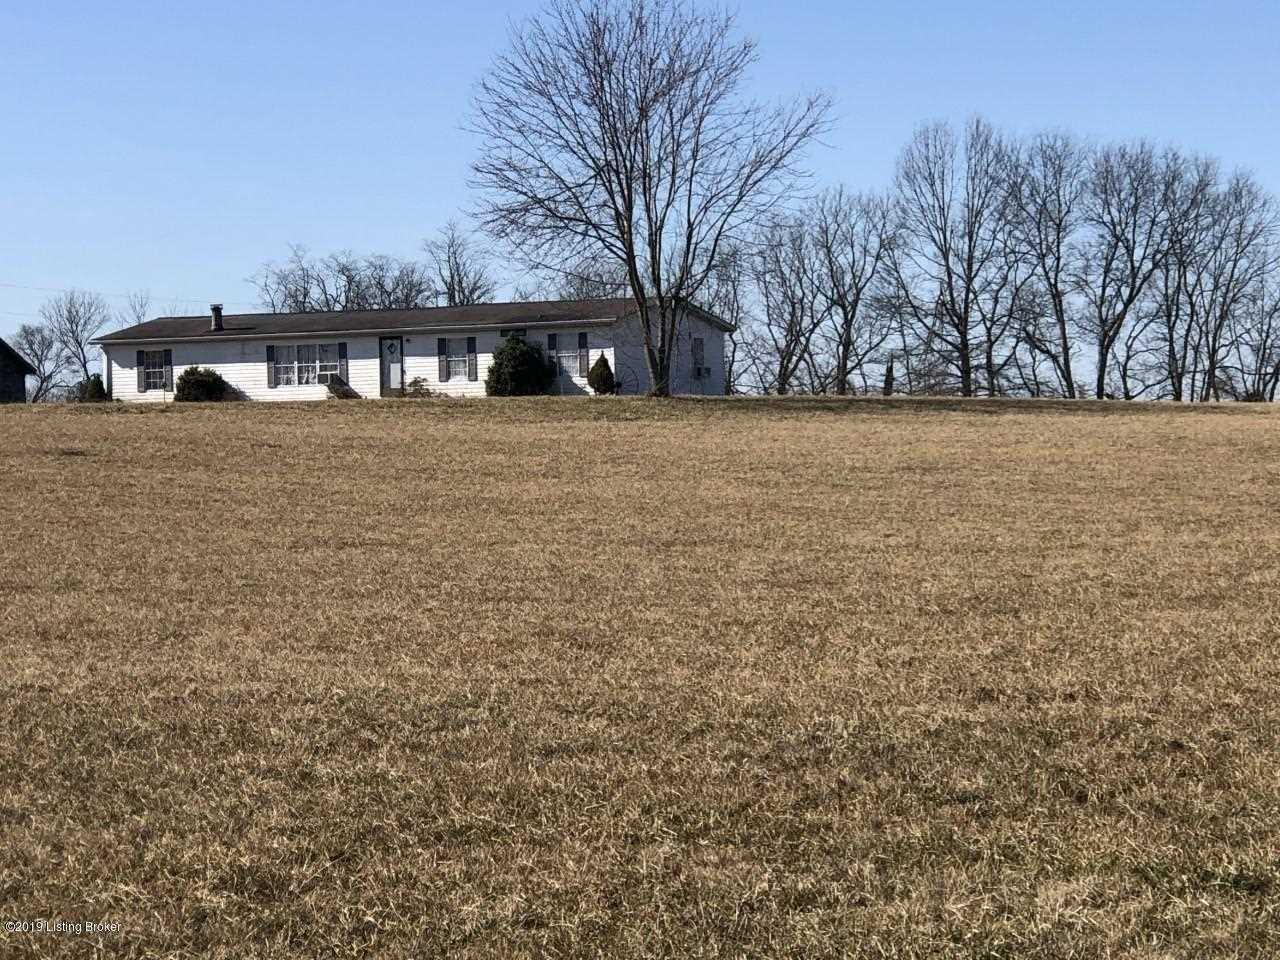 5075 Zaring Mill Rd Shelbyville, KY 40065 | MLS 1524462 Photo 1